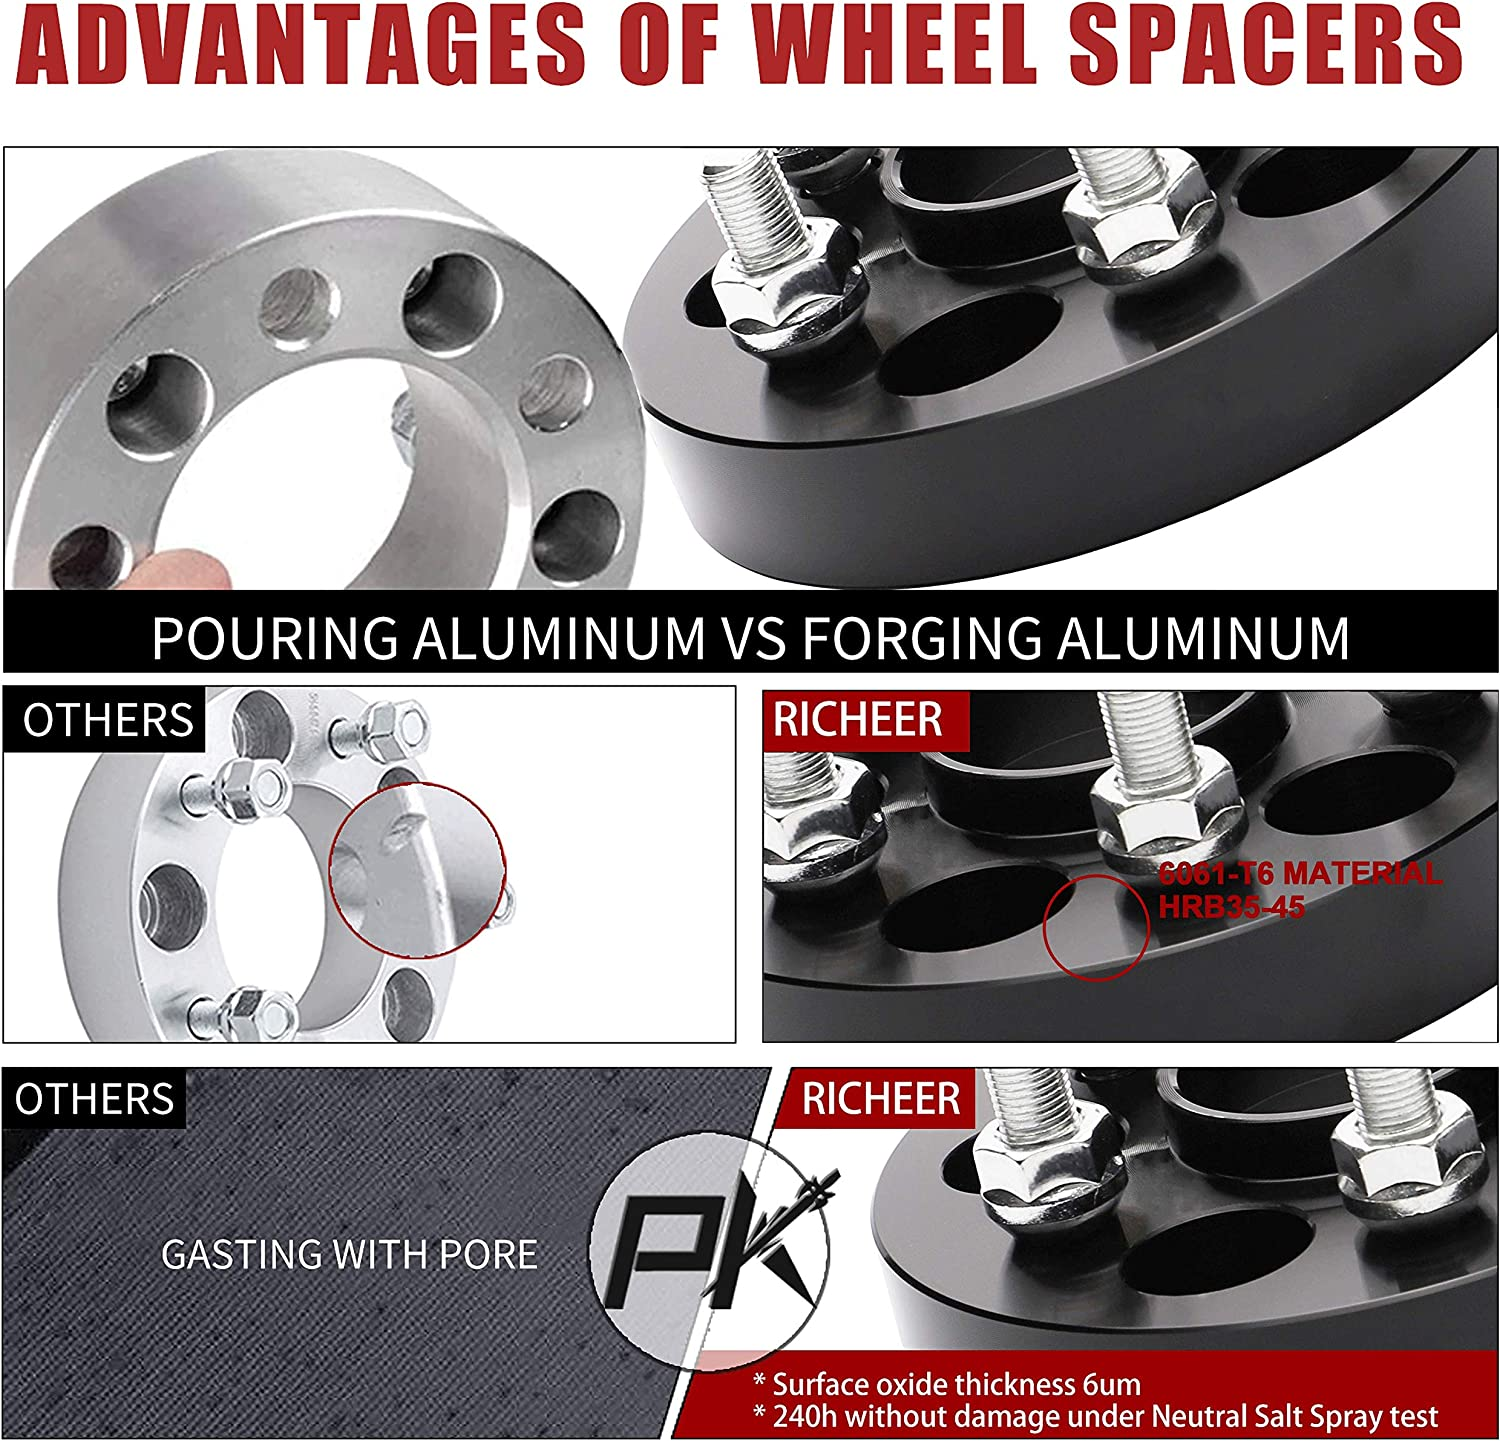 Richeer Wheel Spacers 5x4.5 for 350Z 370Z 300Zx 240Sx G35 G37,Forged spacers 1 inch 12x1.25 Studs/&66.1mm Center Bore. 5X114.3mm